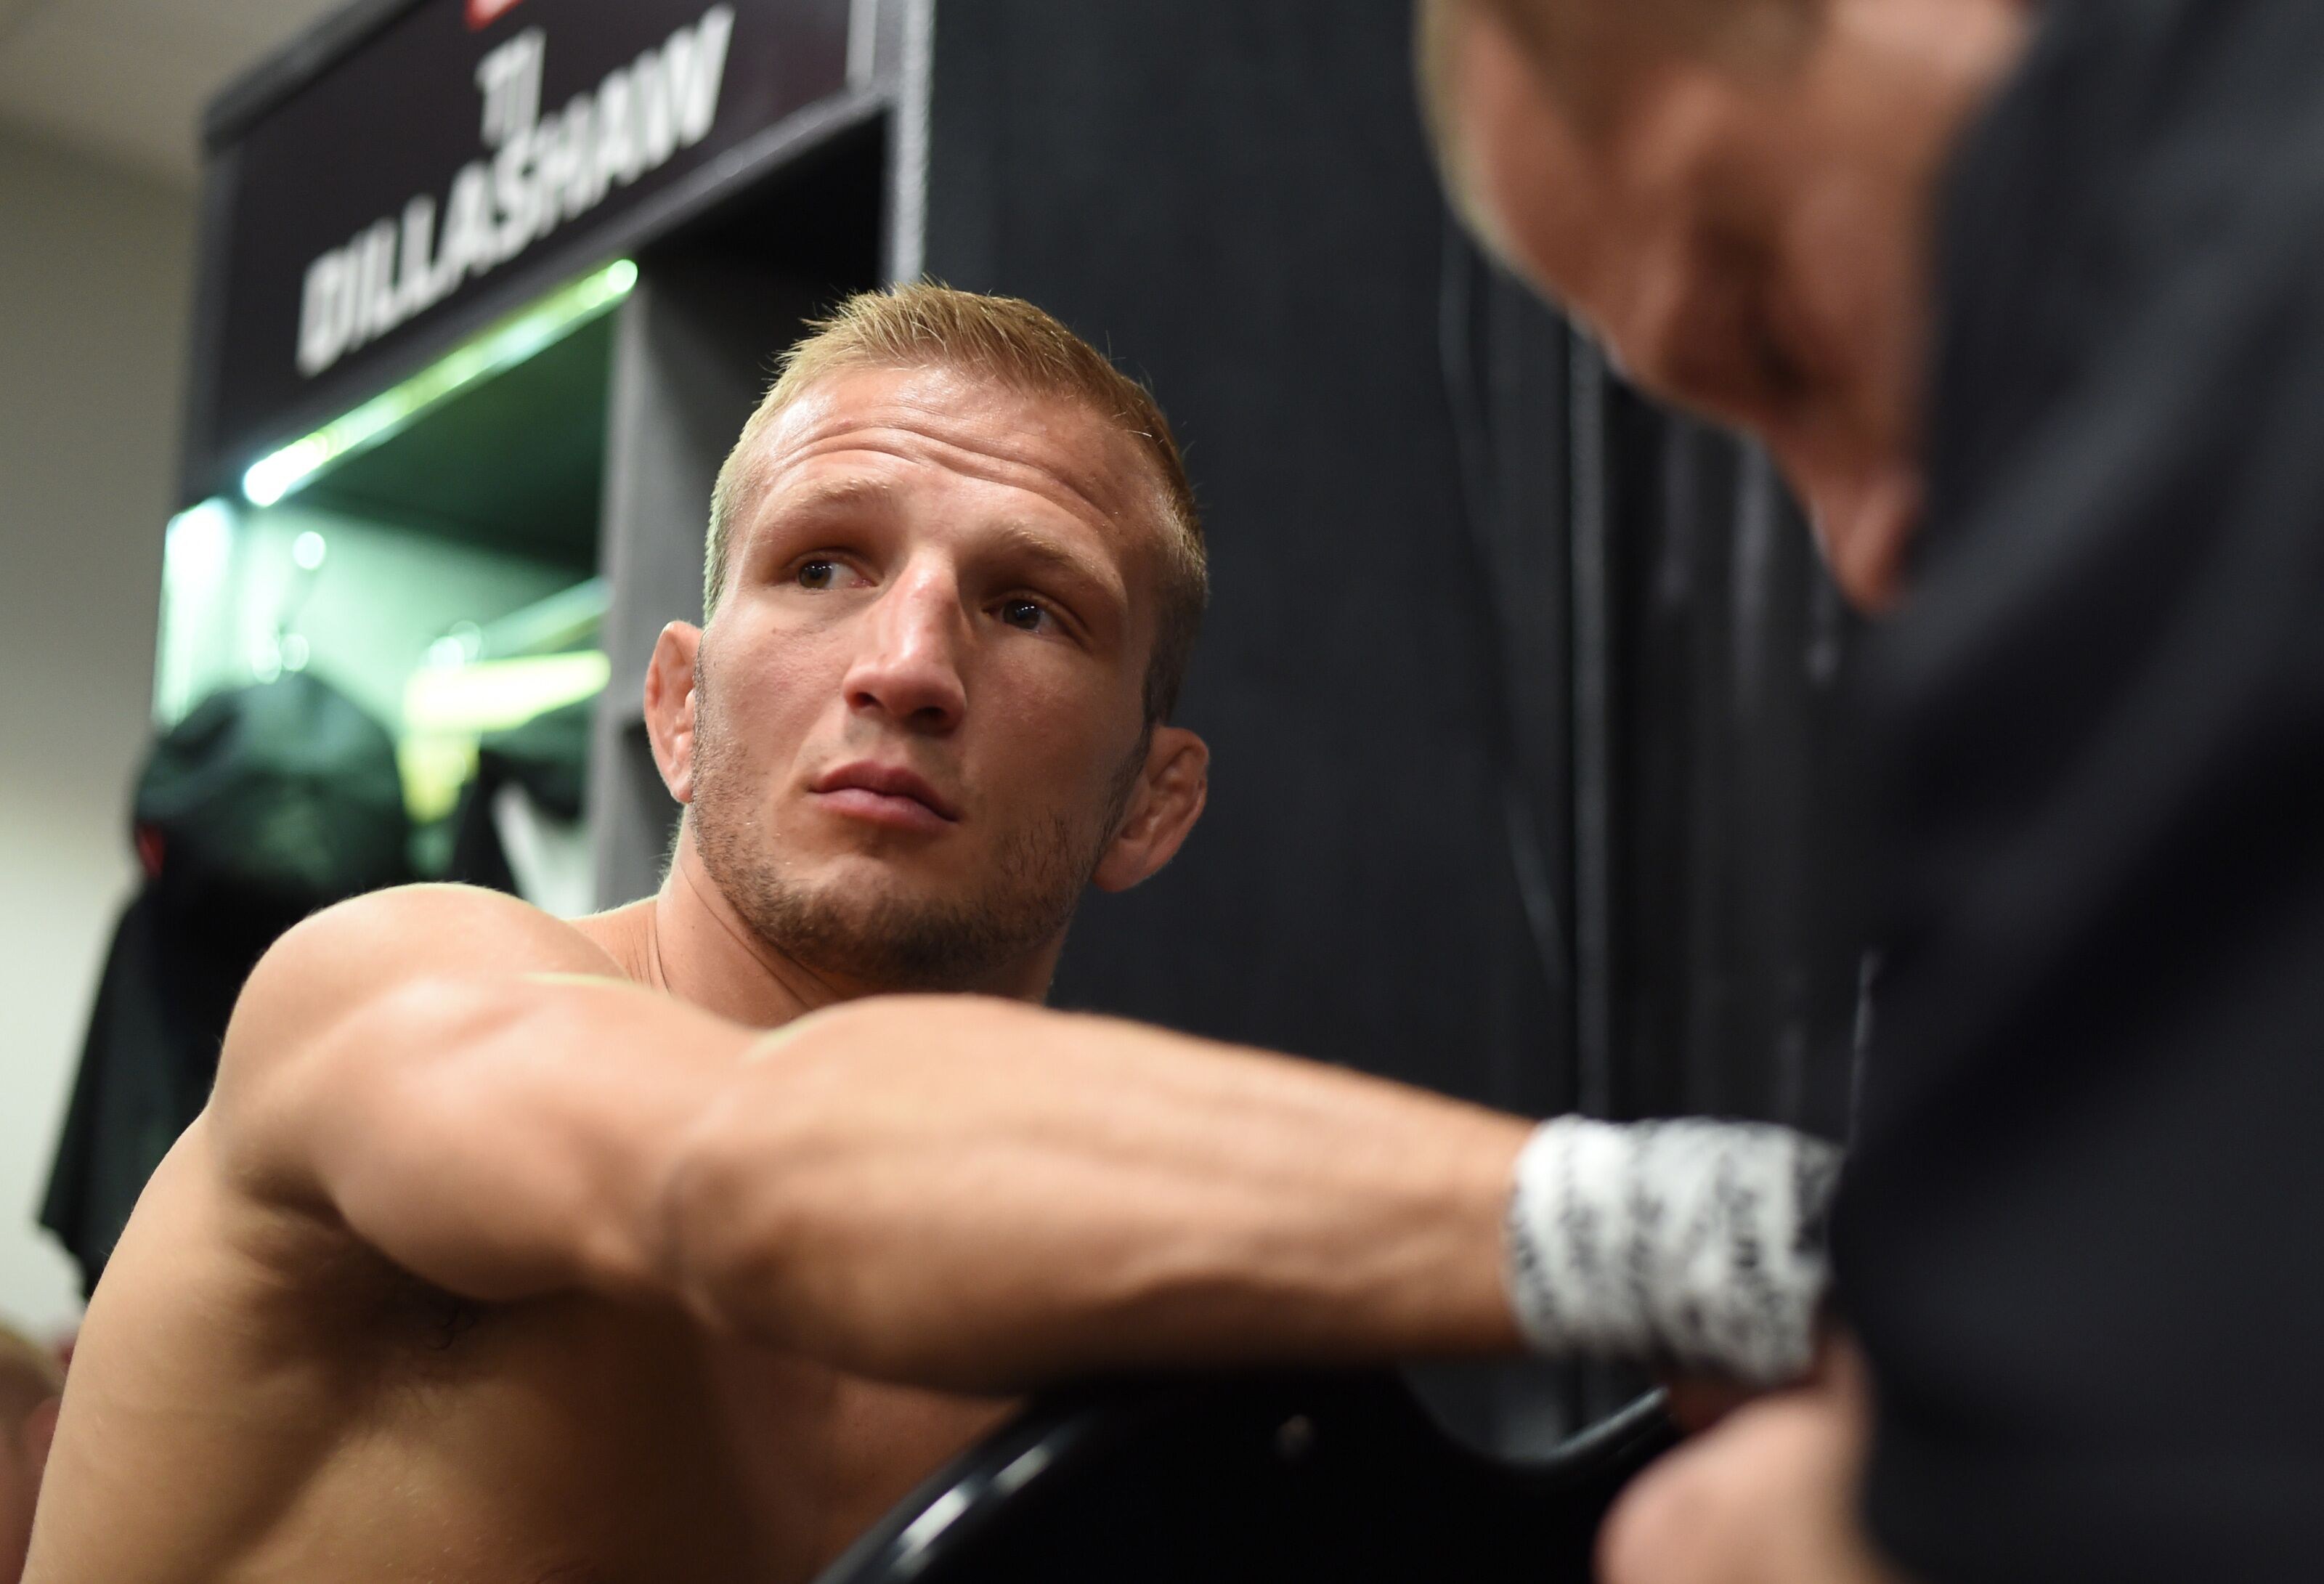 TJ Dillashaw releases apology video 'This won't be the end of me'